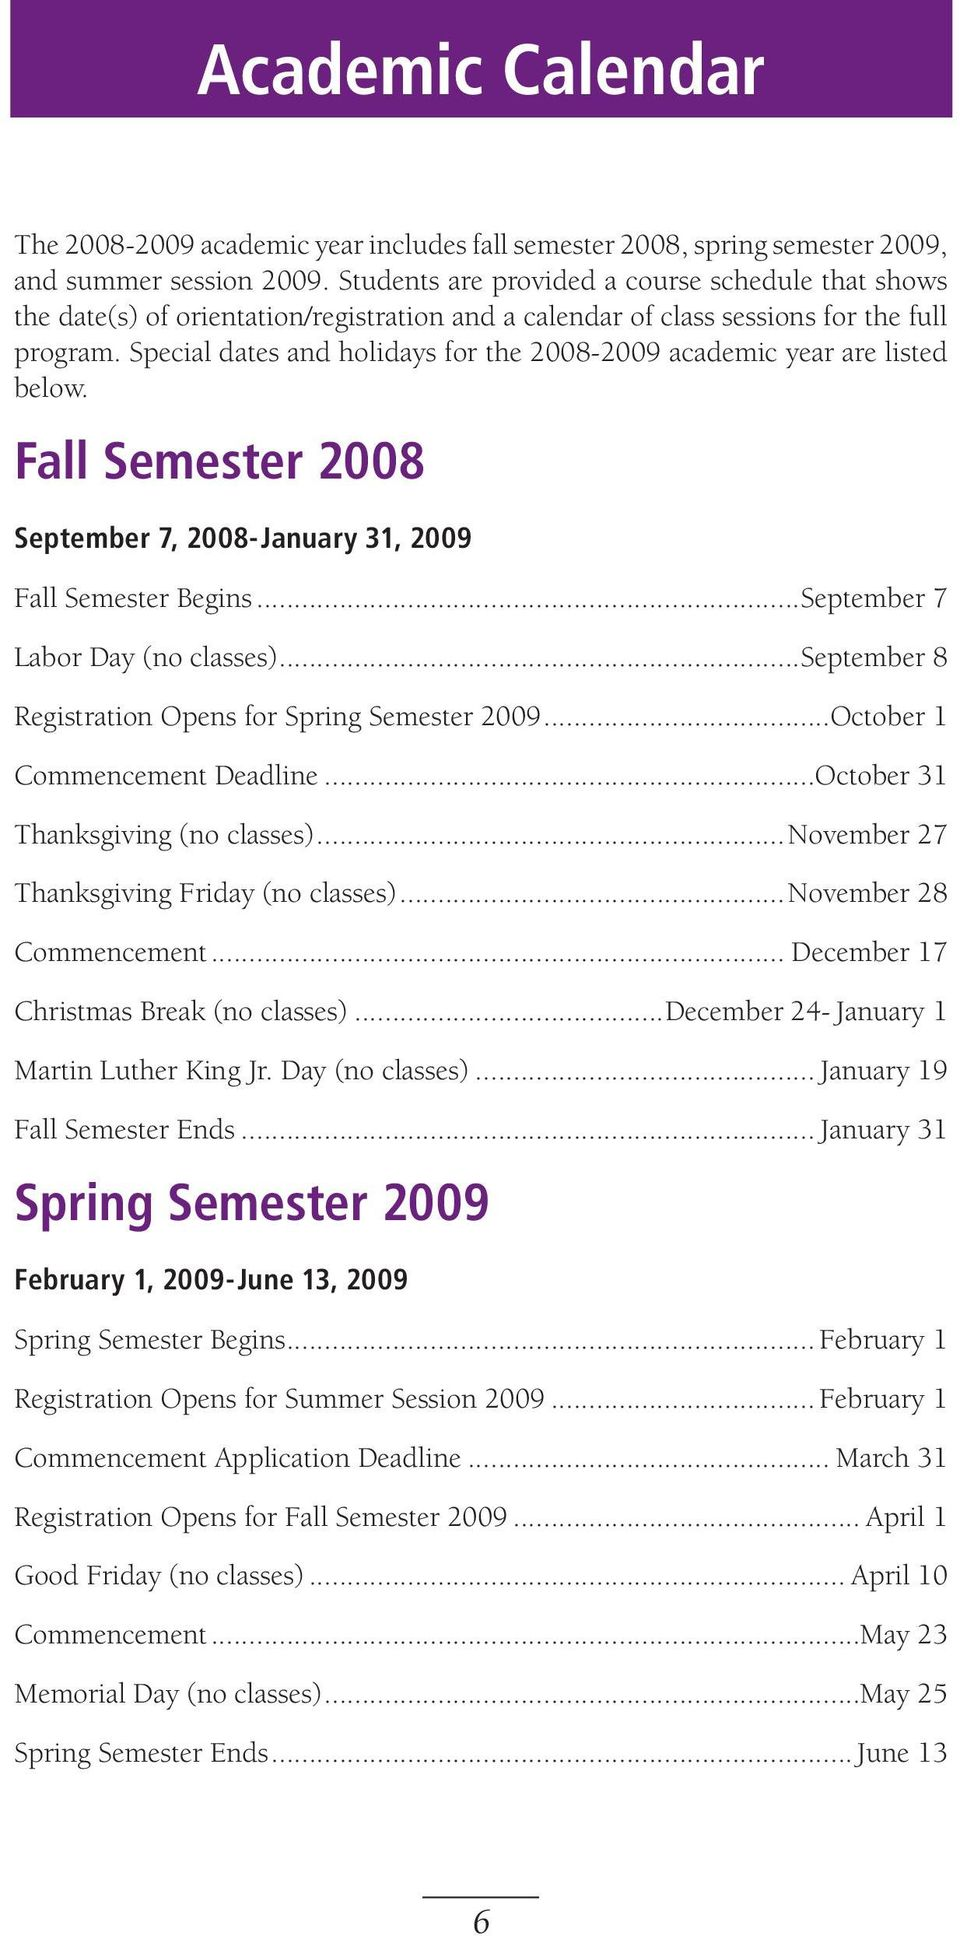 Special dates and holidays for the 2008-2009 academic year are listed below. Fall Semester 2008 September 7, 2008-January 31, 2009 Fall Semester Begins...September 7 Labor Day (no classes).